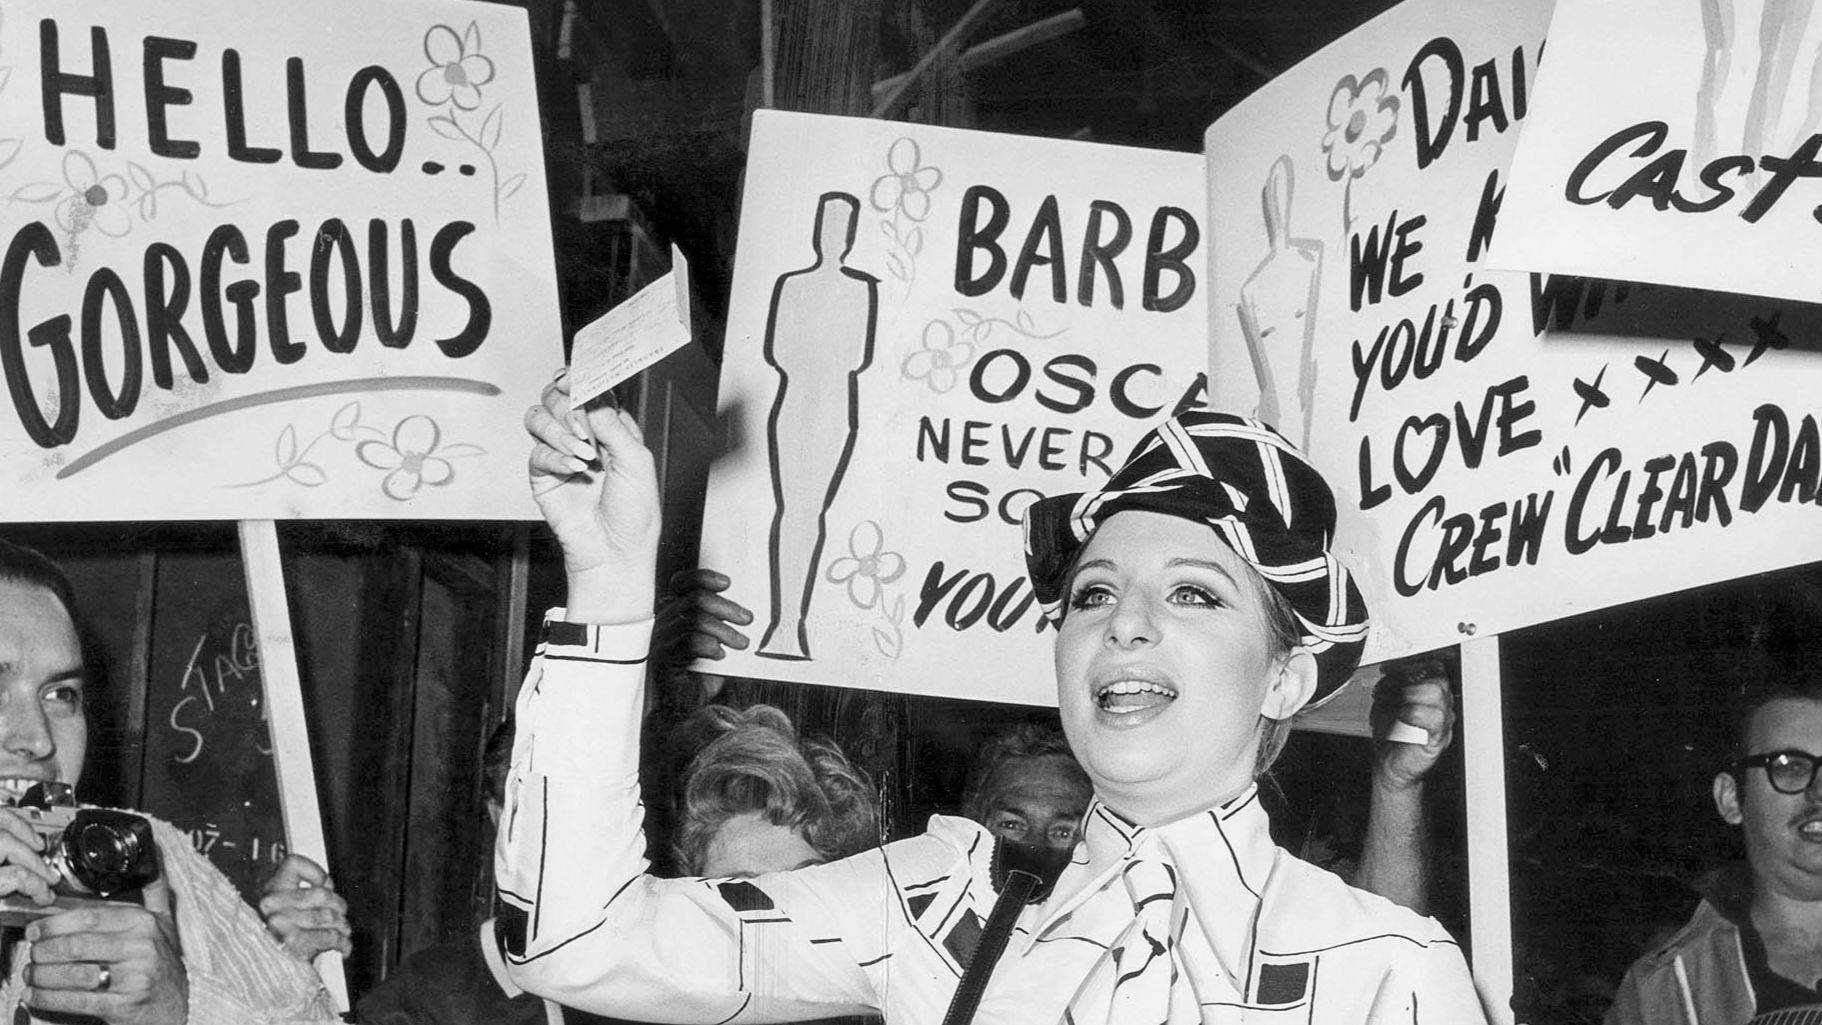 From the Archives: Celebrating Barbra Streisand's Oscar win